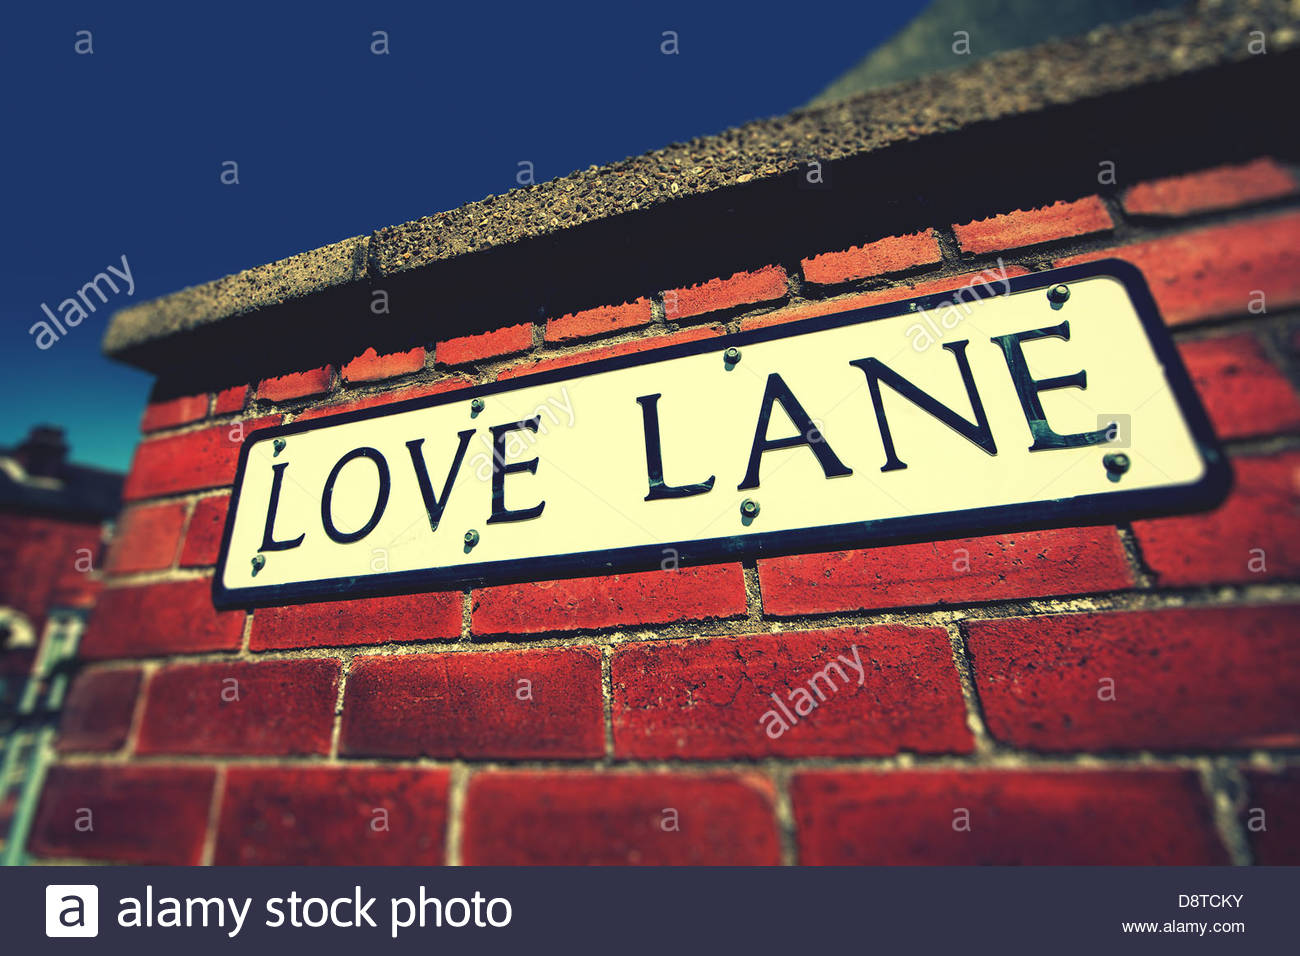 Love Lane sign on wall Banque D'Images